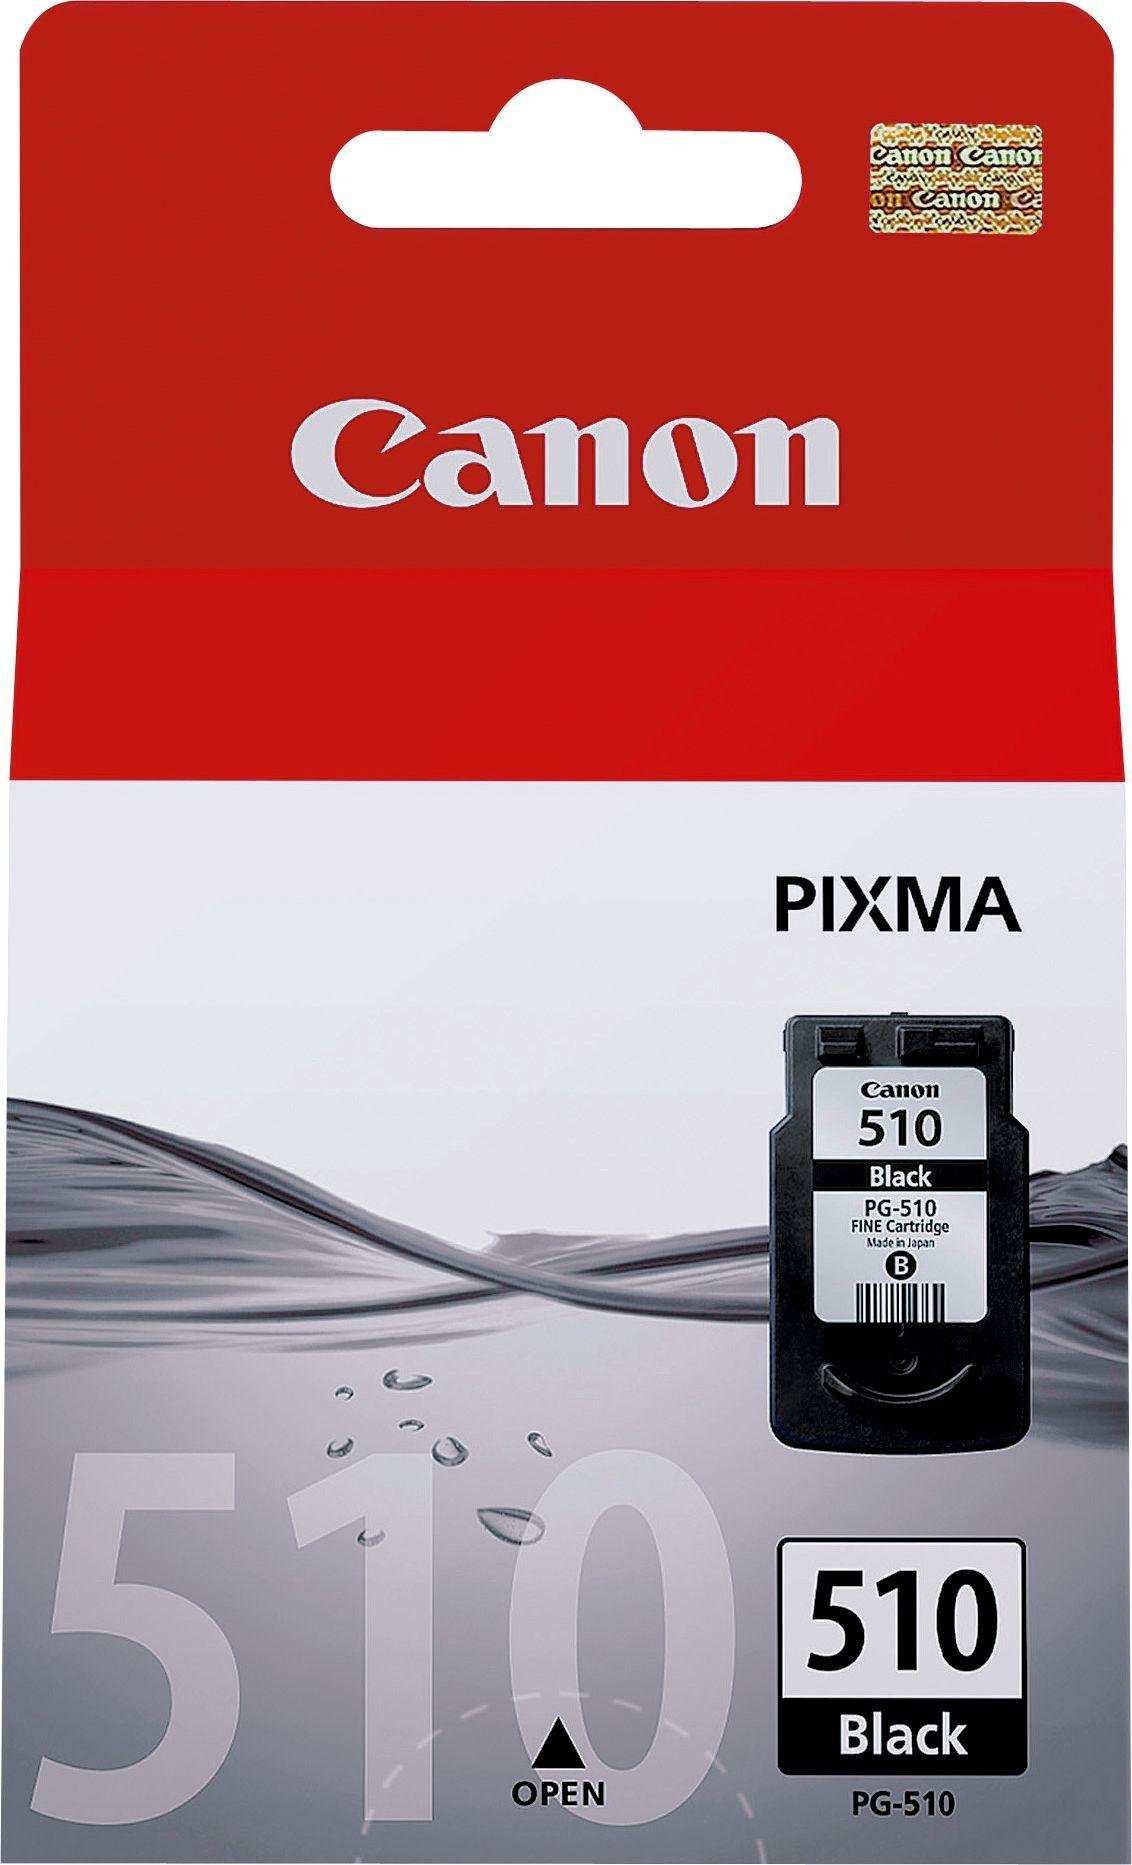 Canon PG-510 Black Ink Cartridge from Canon